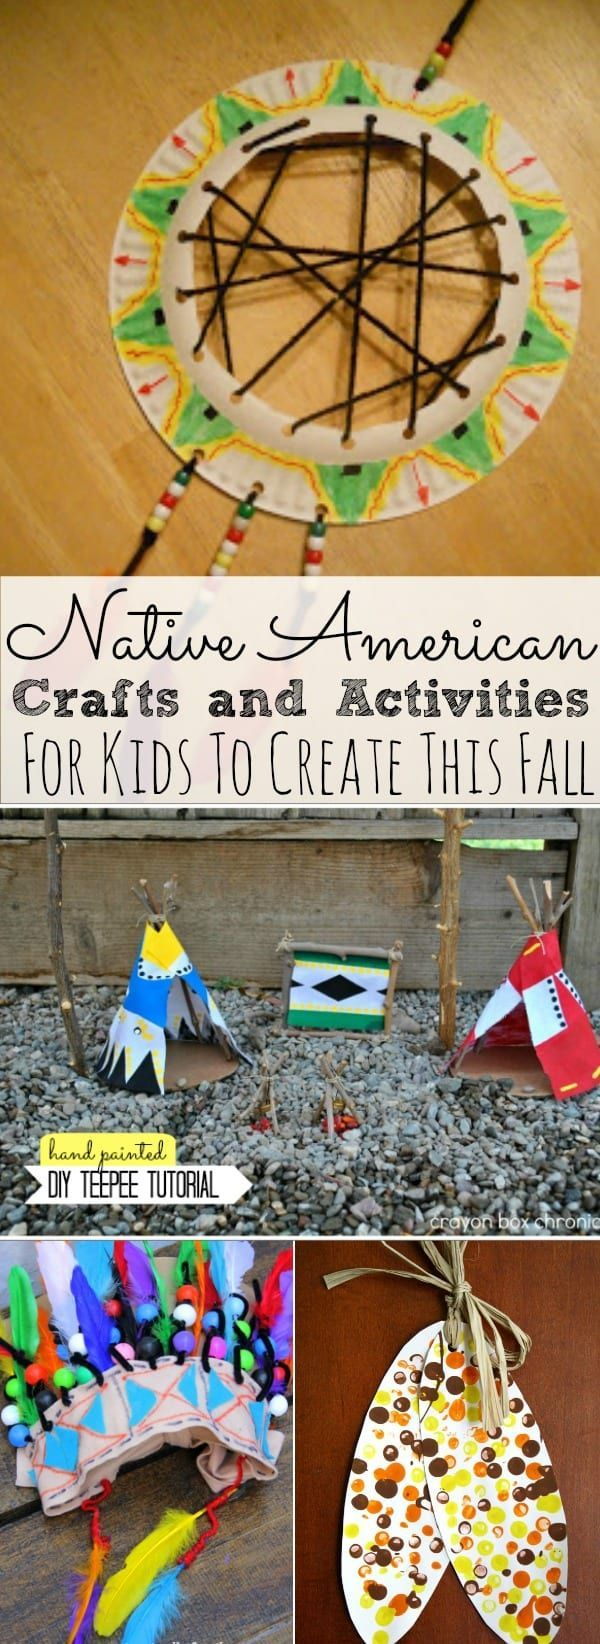 Native American Crafts and Activities for Kids The…